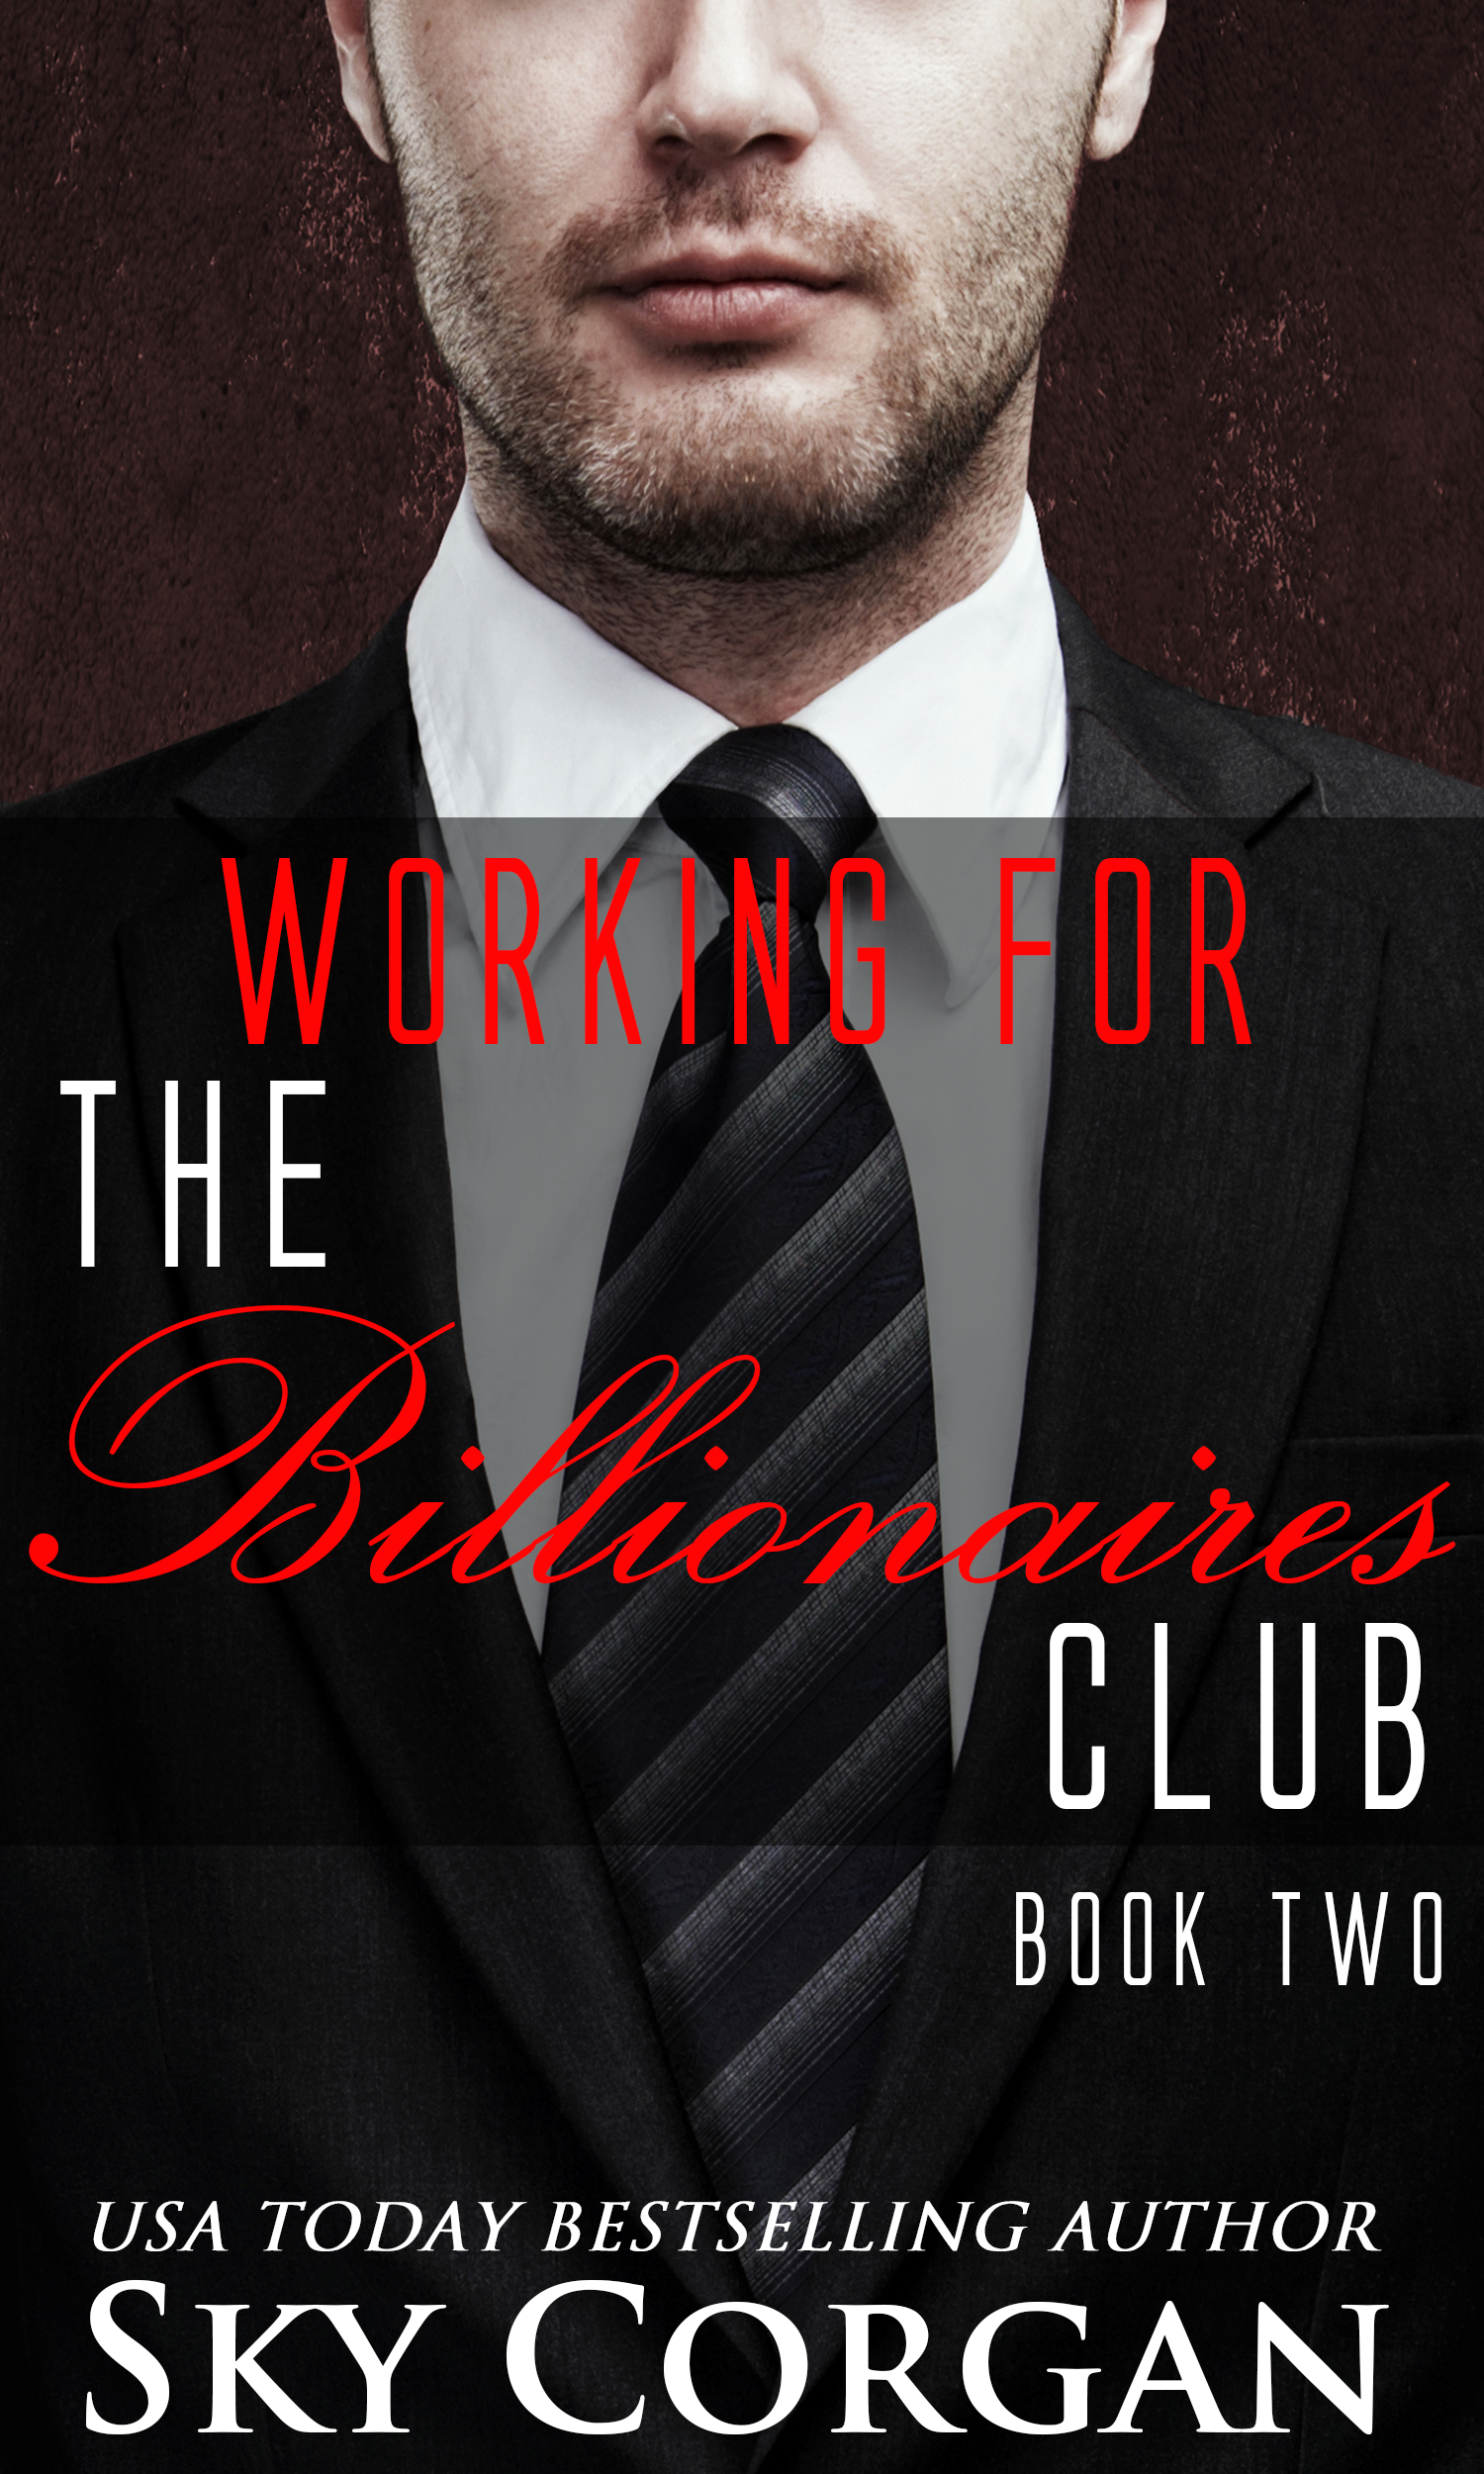 Working for the billionaires club: book two